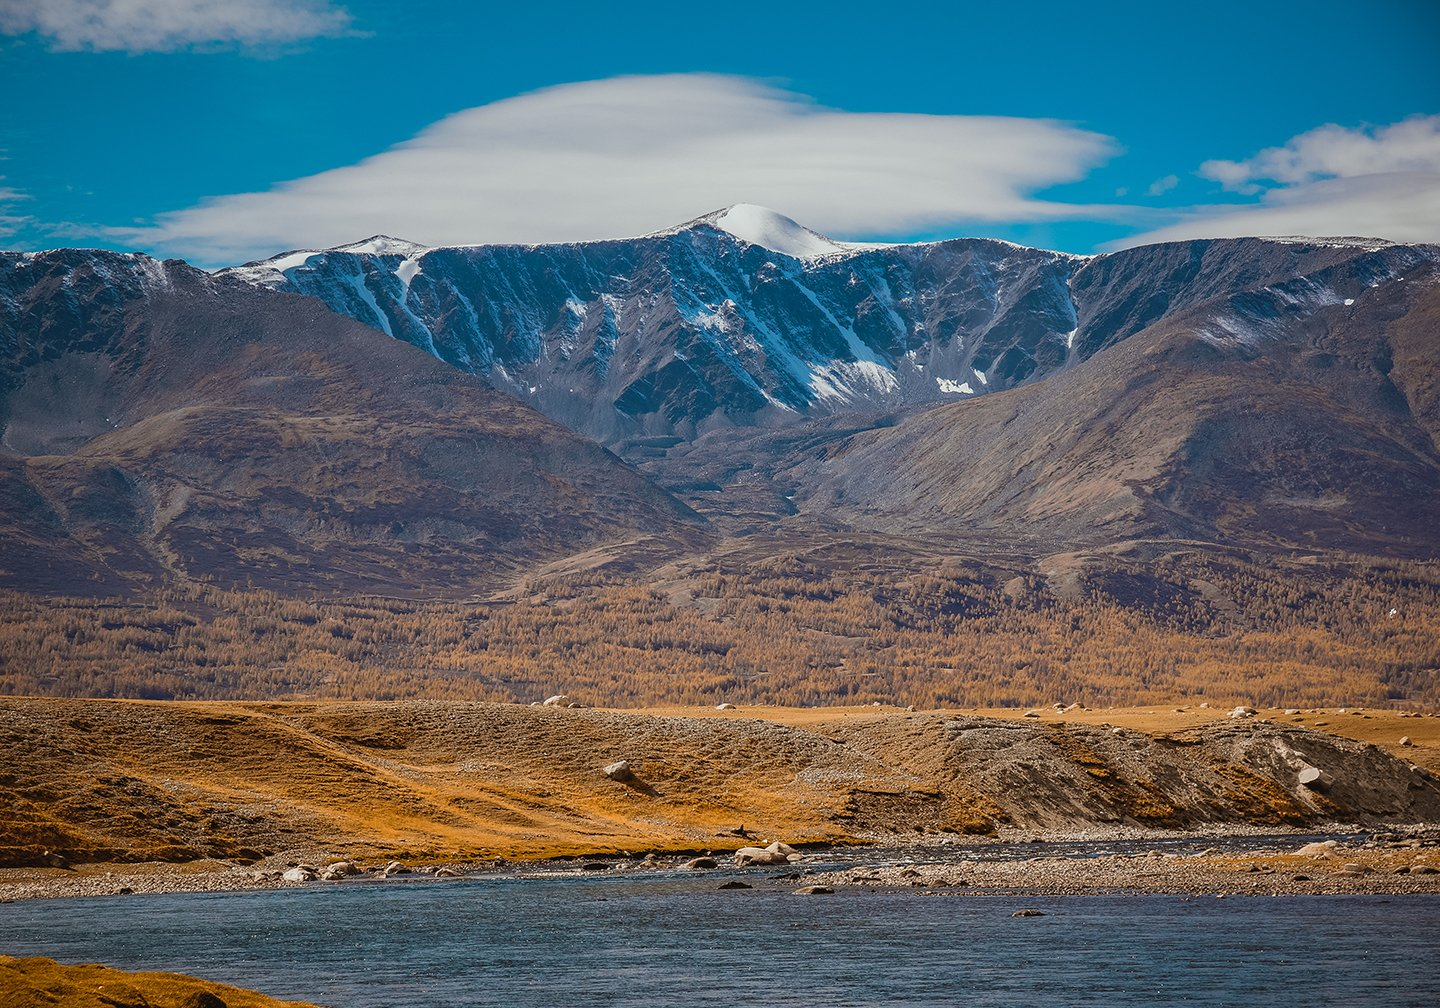 A view of the Mongolian Highlands with water in the foreground and snow-topped mountains in the distance